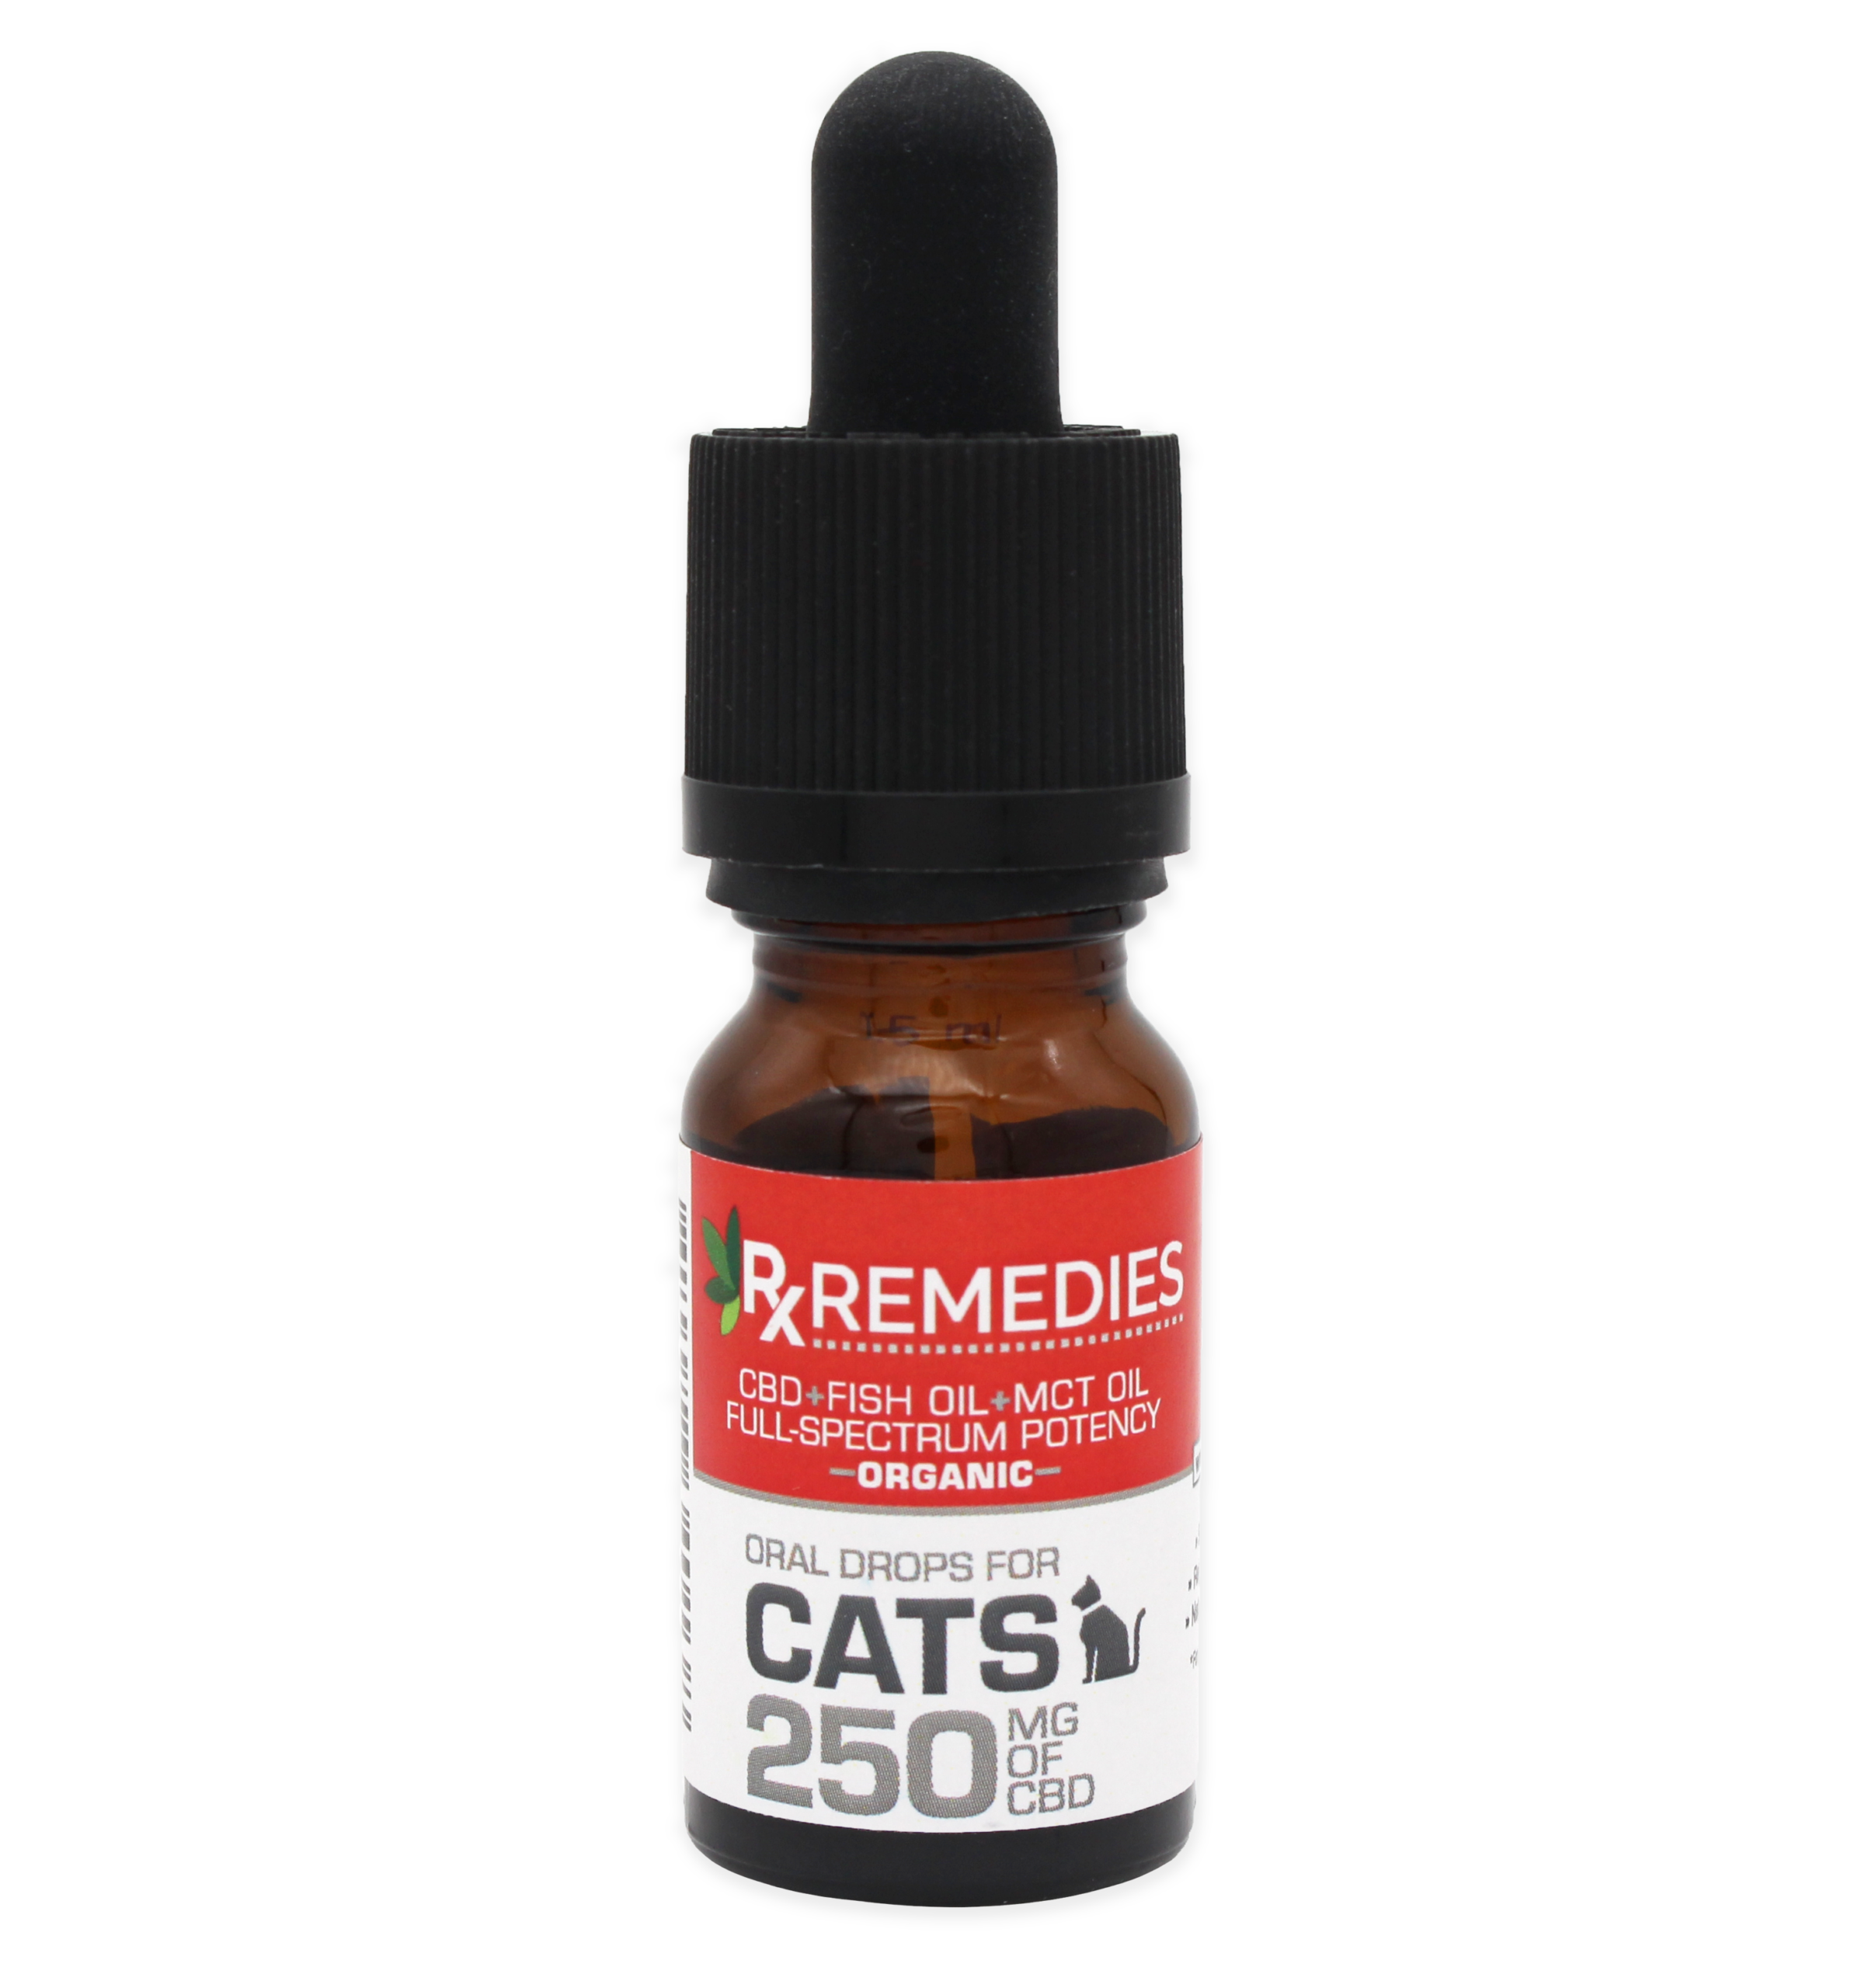 Rx Remedies, Oral Drops for Cats, 250mg/10mL